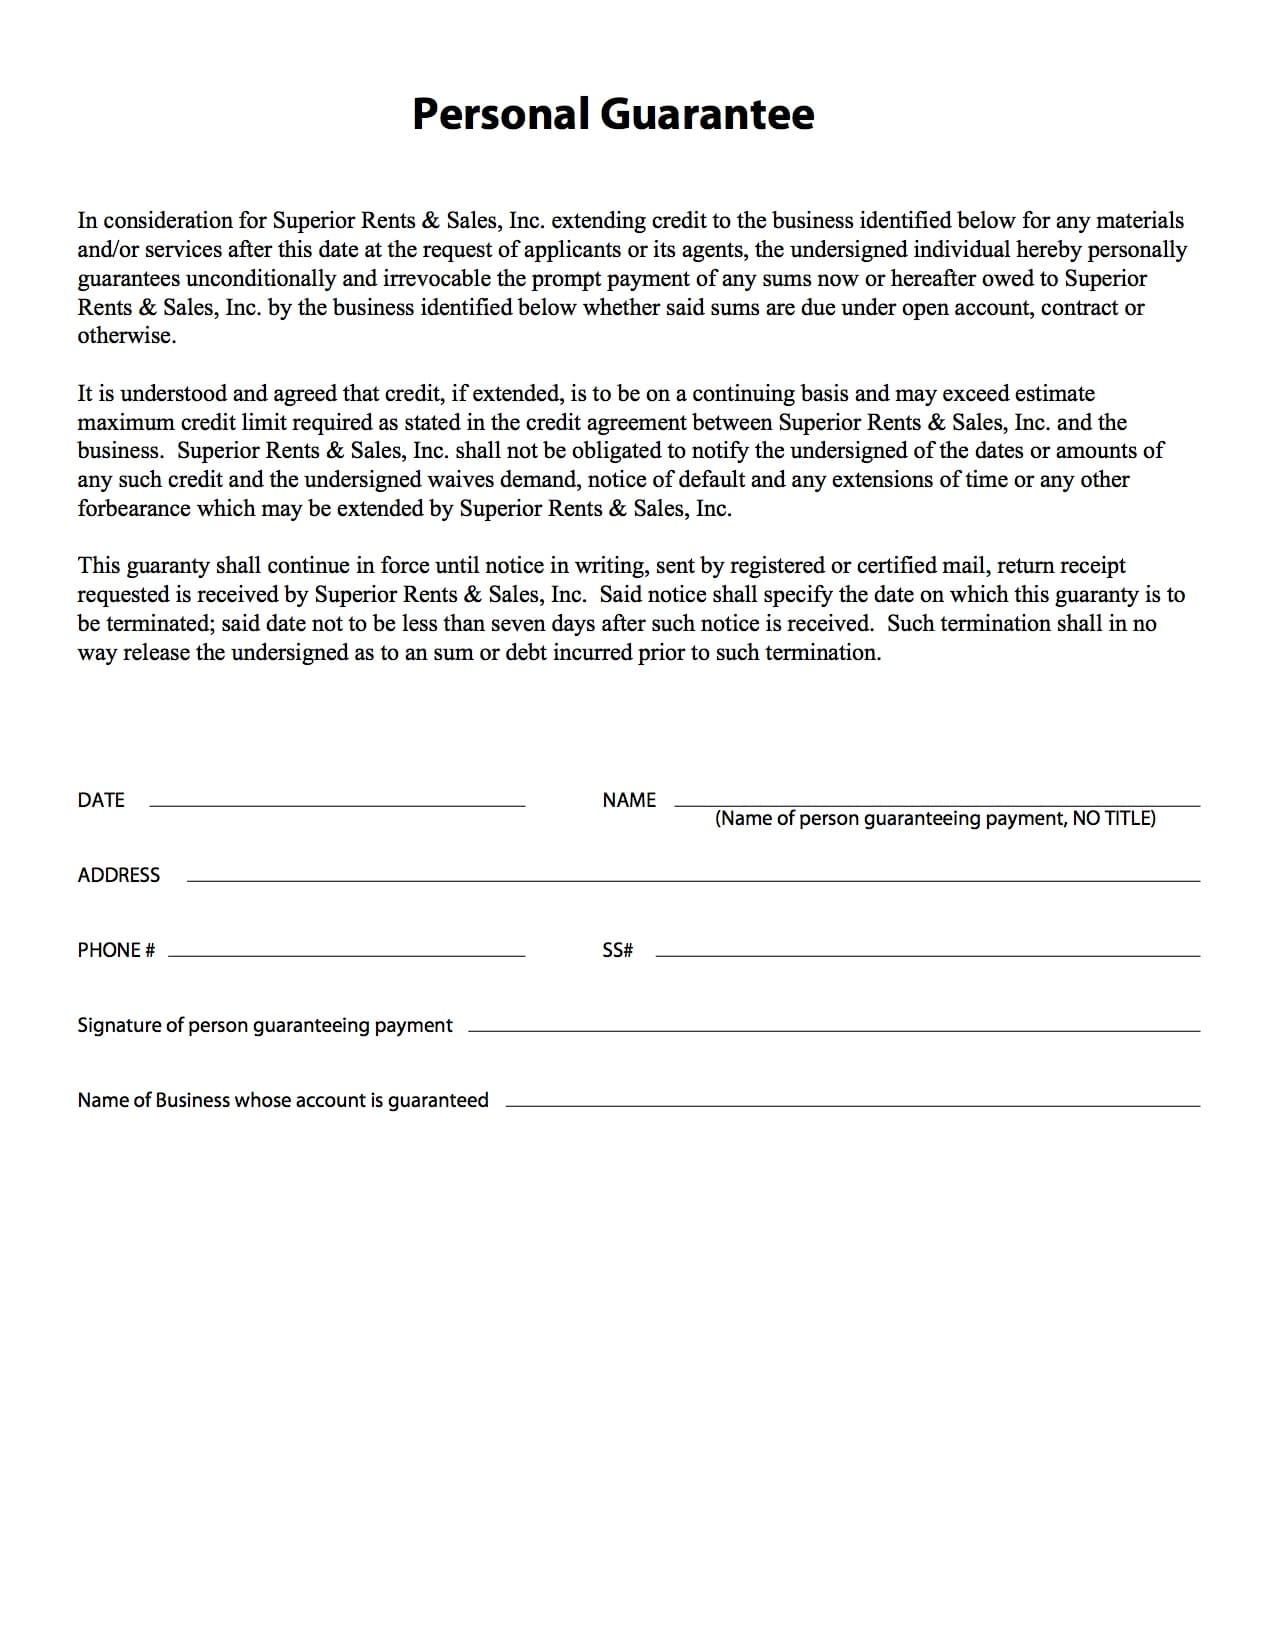 Apply for an Account Superior Rents Equipment Rental – Superior Service Application Form